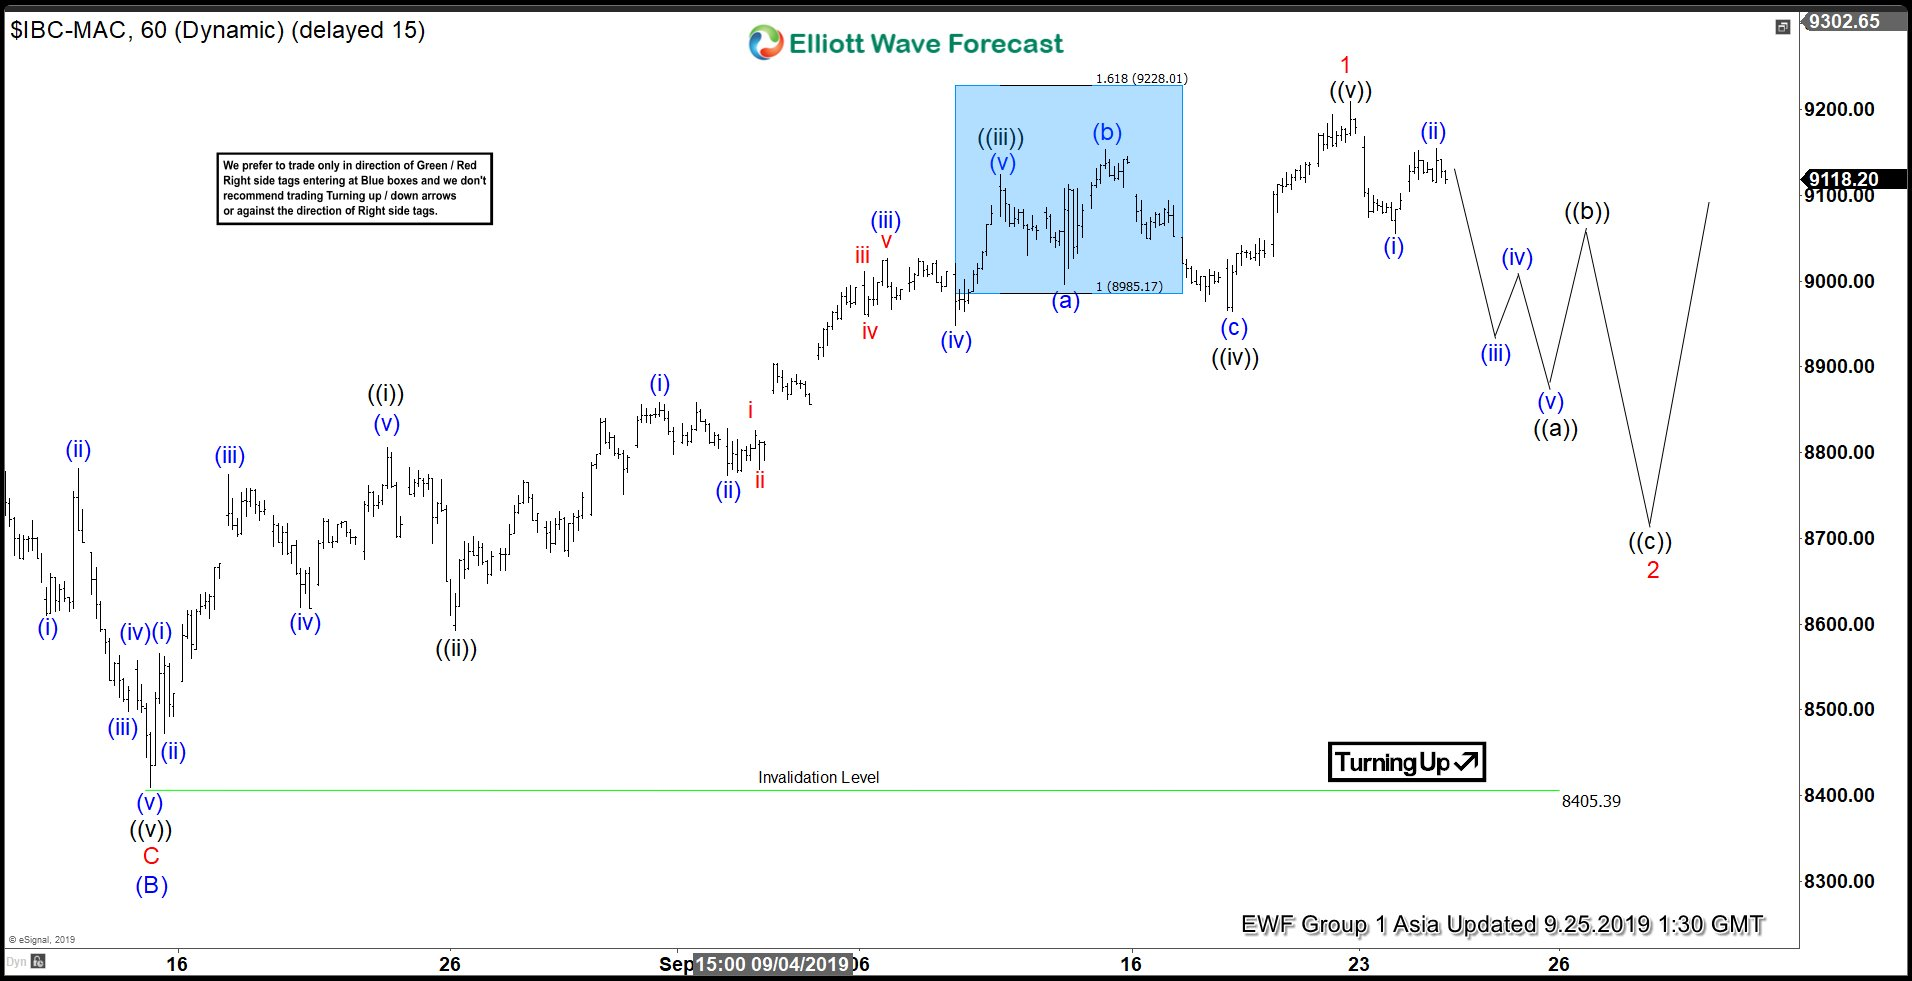 Elliott Wave View: IBEX Ended Impulsive Rally